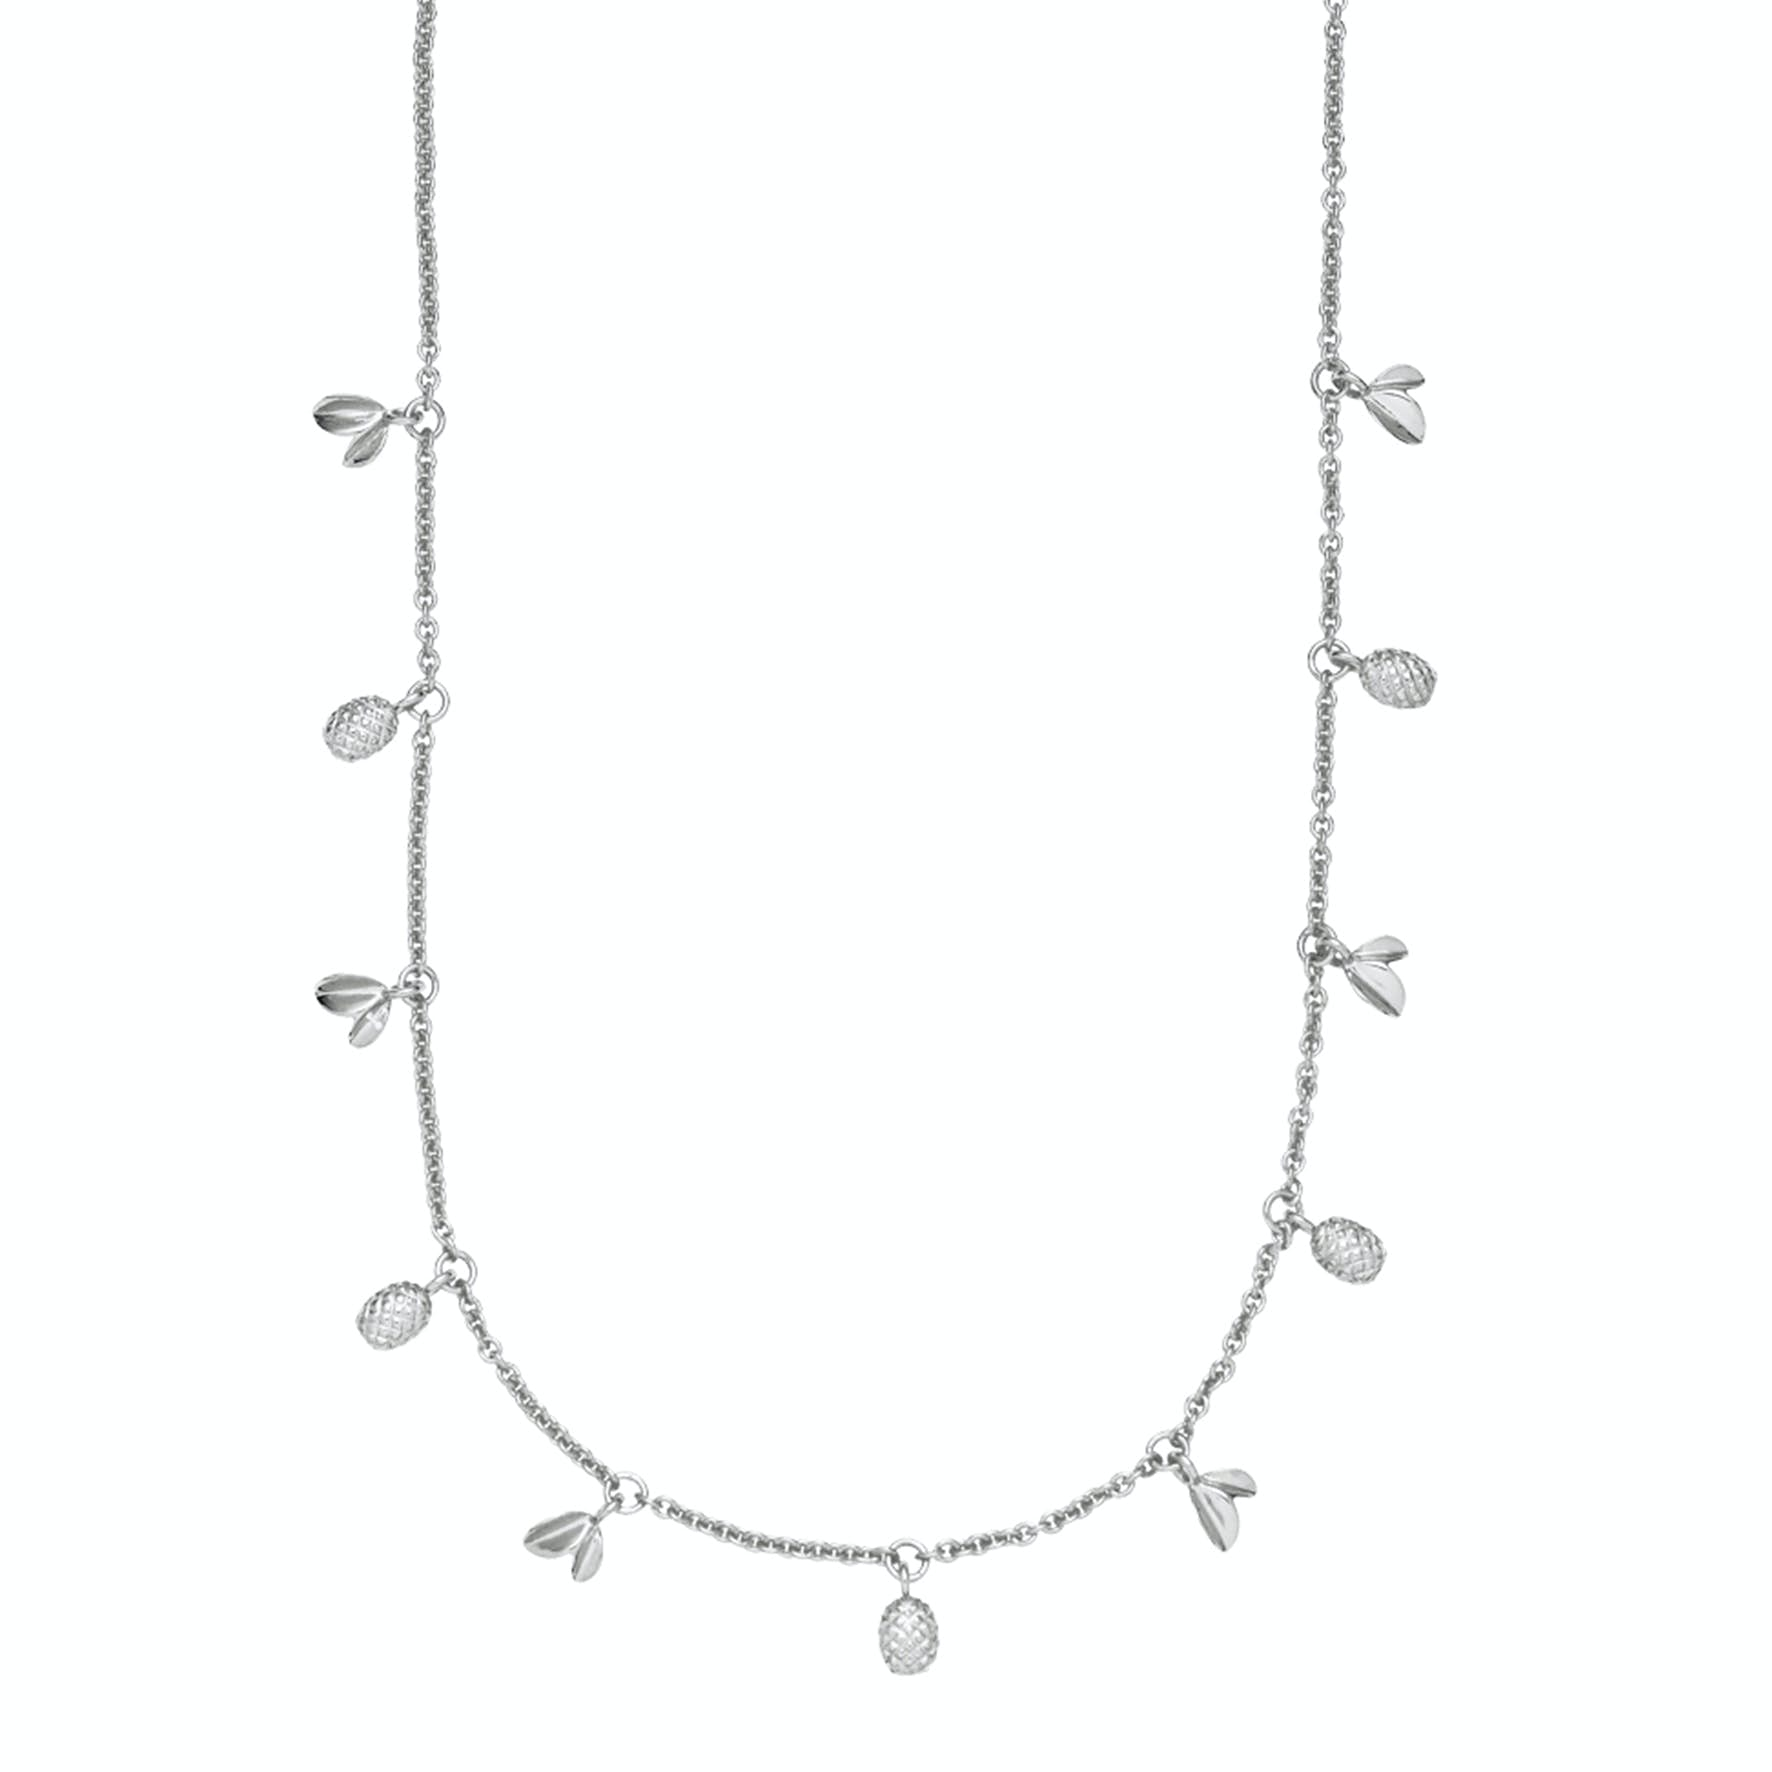 Anna by Sistie Necklace